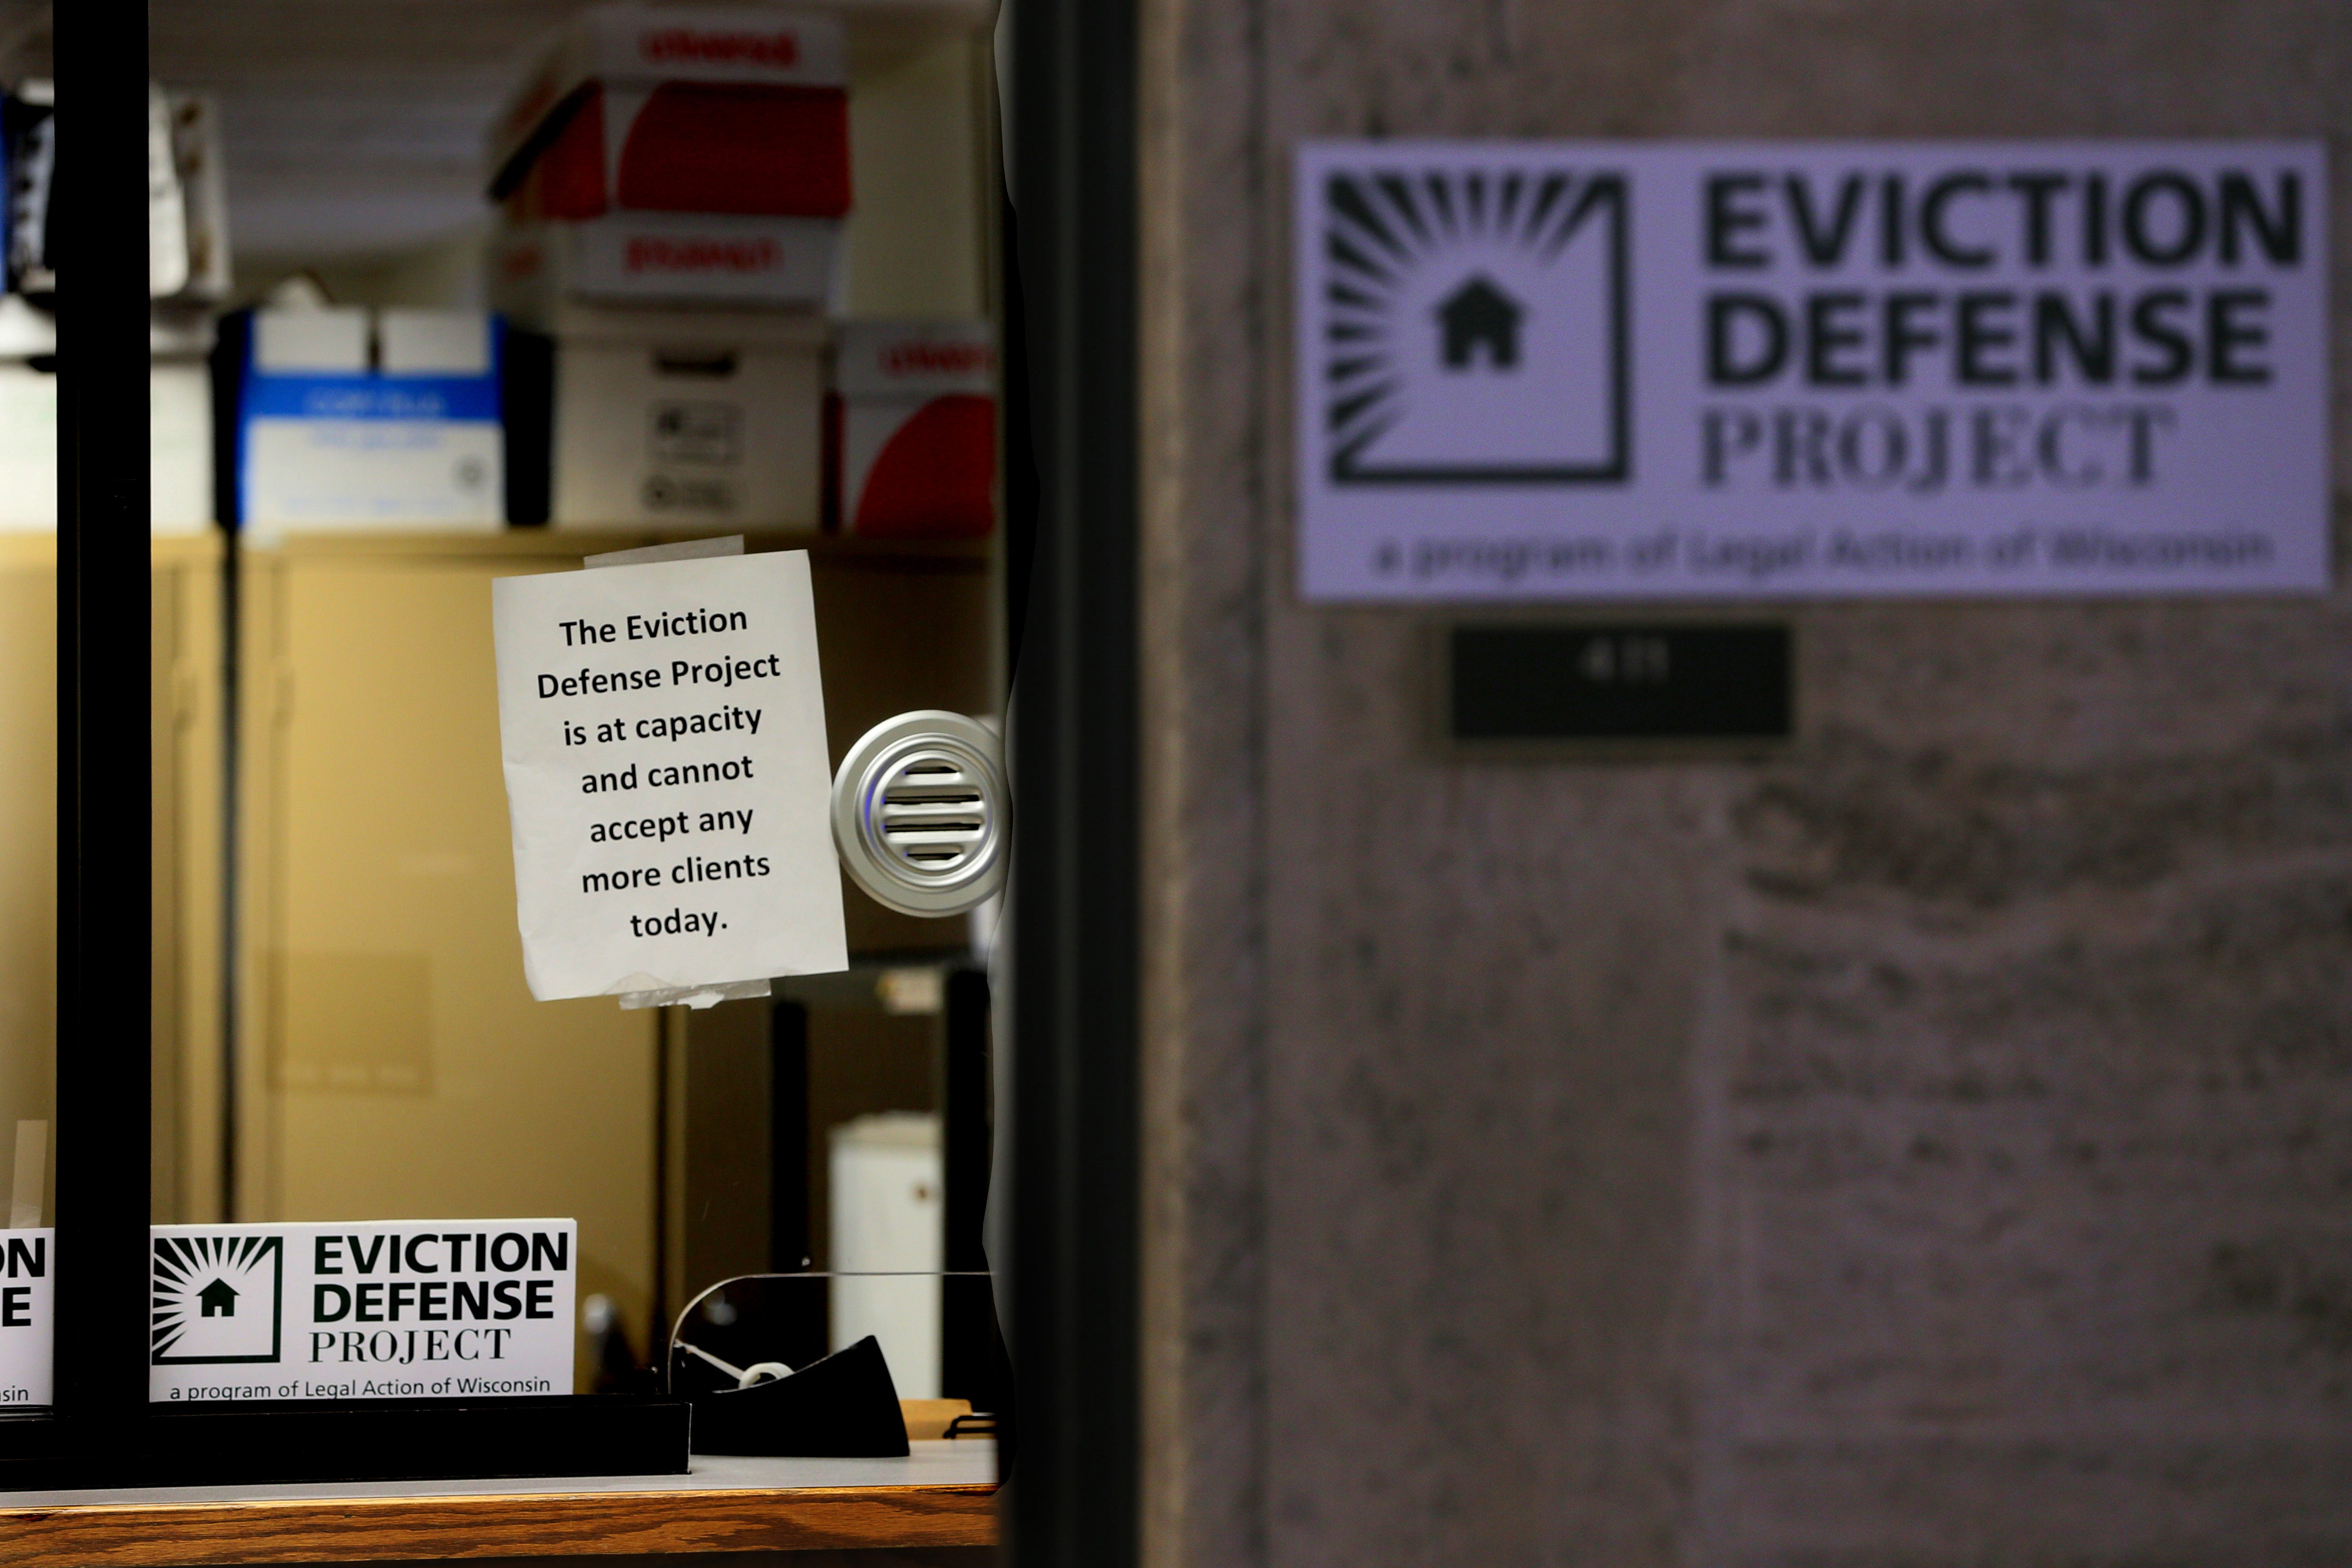 The office of the Legal Eviction Defense Project at the Milwaukee County Court House January 2020. The program that launched in 2017 provides free legal aid for low-income tenants who are facing eviction. Amid eviction moratoriums due to COVID-19, the defense project served fewer clients in 2020 than in a typical year.